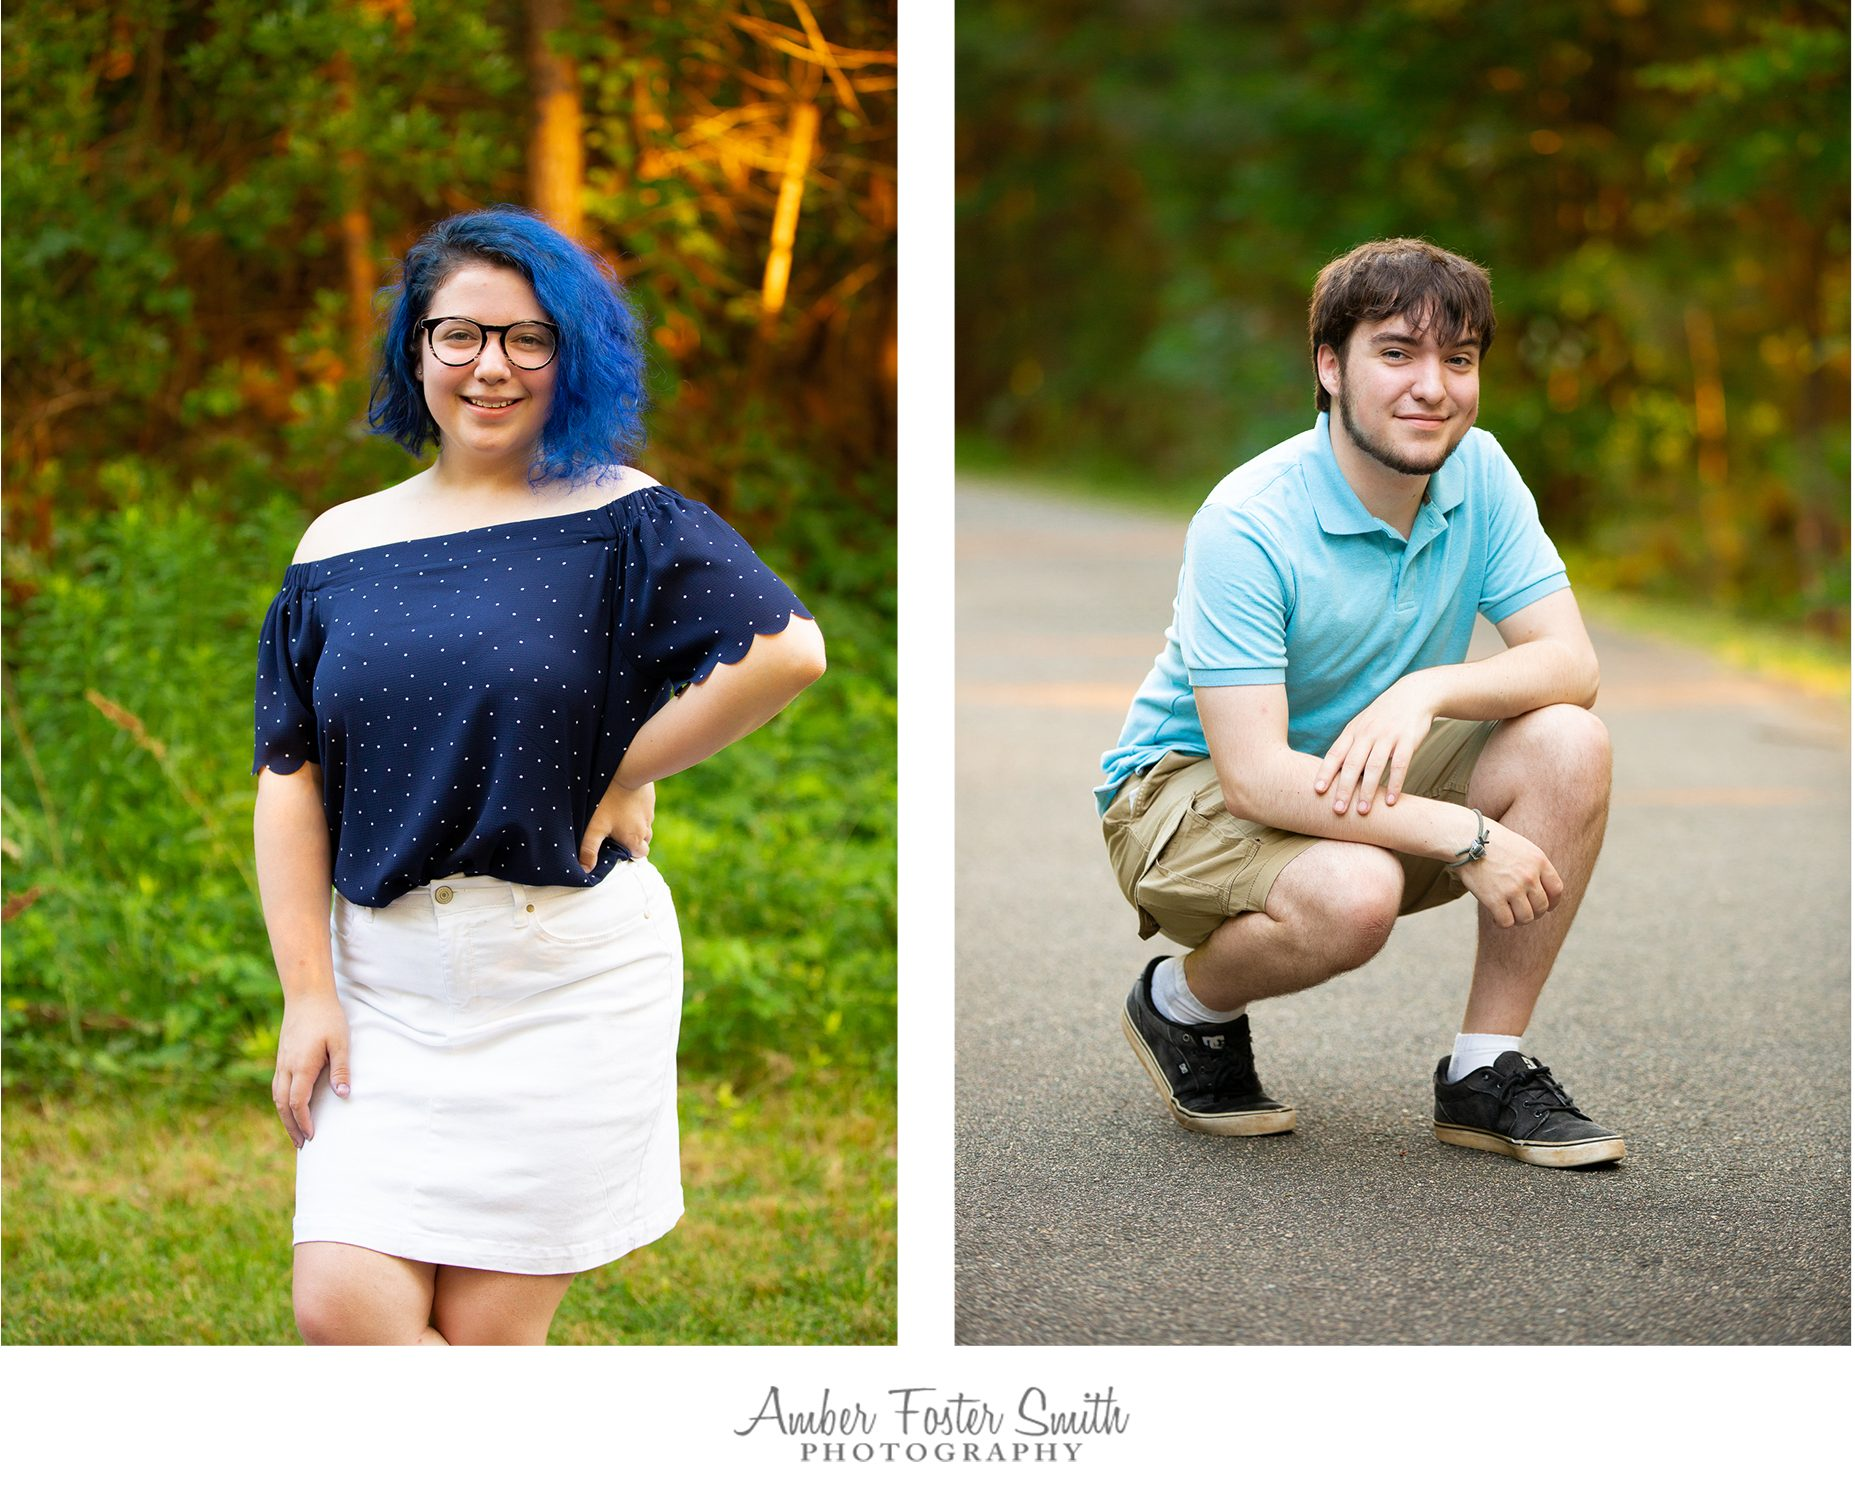 Amber Foster Smith Photography - Holly Springs Portrait Photographer